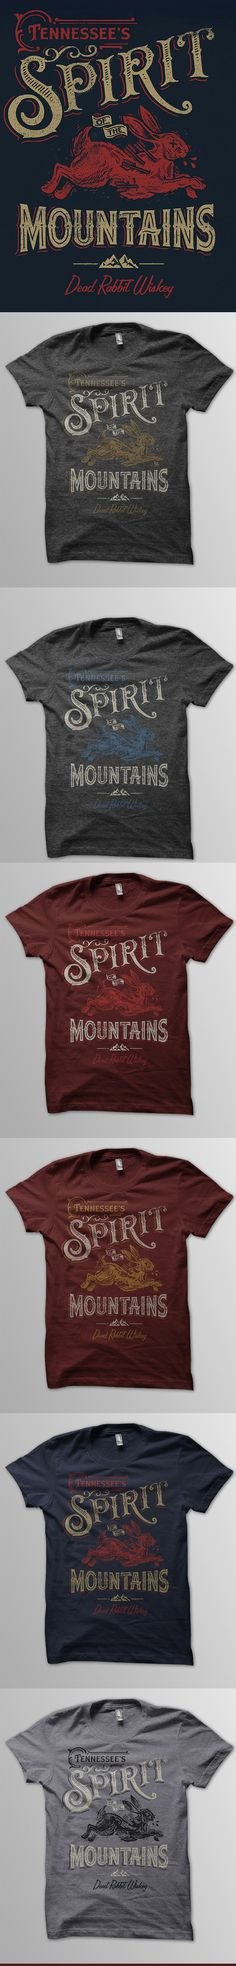 Spirit mountains tee mocks list #design #vintage #type #texture